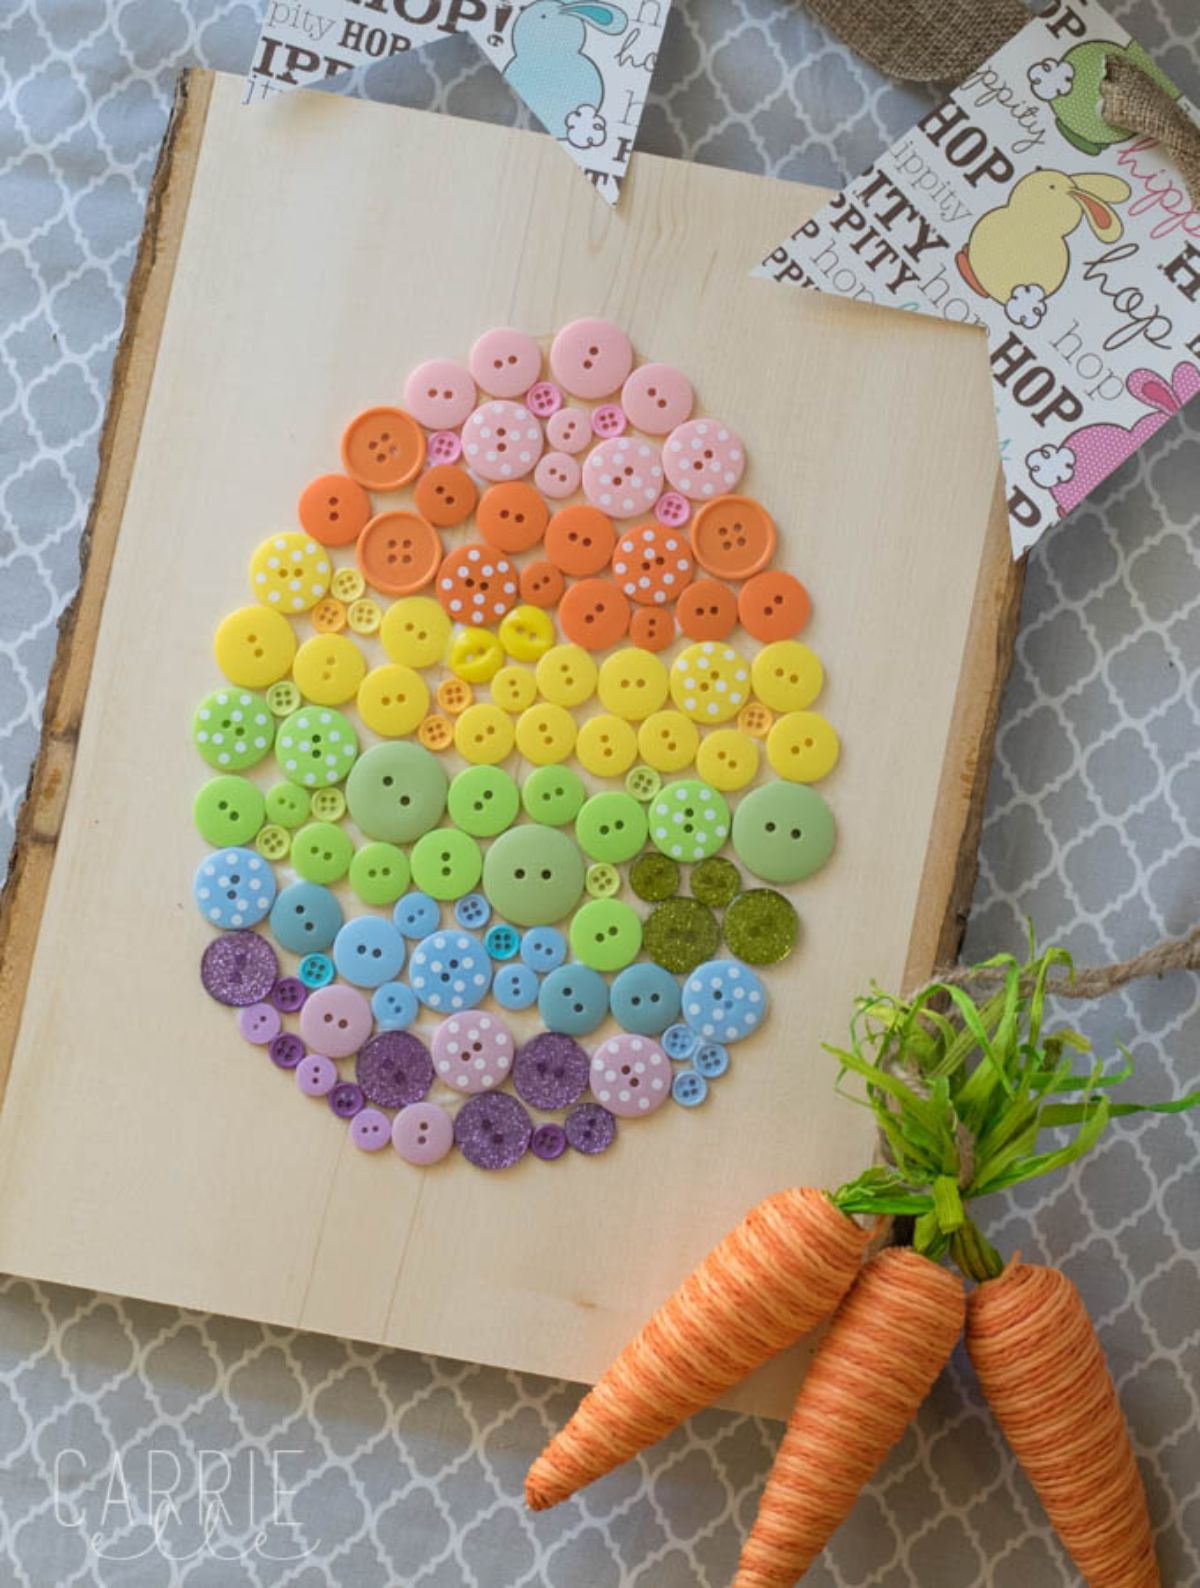 A striped egg made of different colored buttons is stuck to a canvas sheet. Next to it sits 3 material carrots